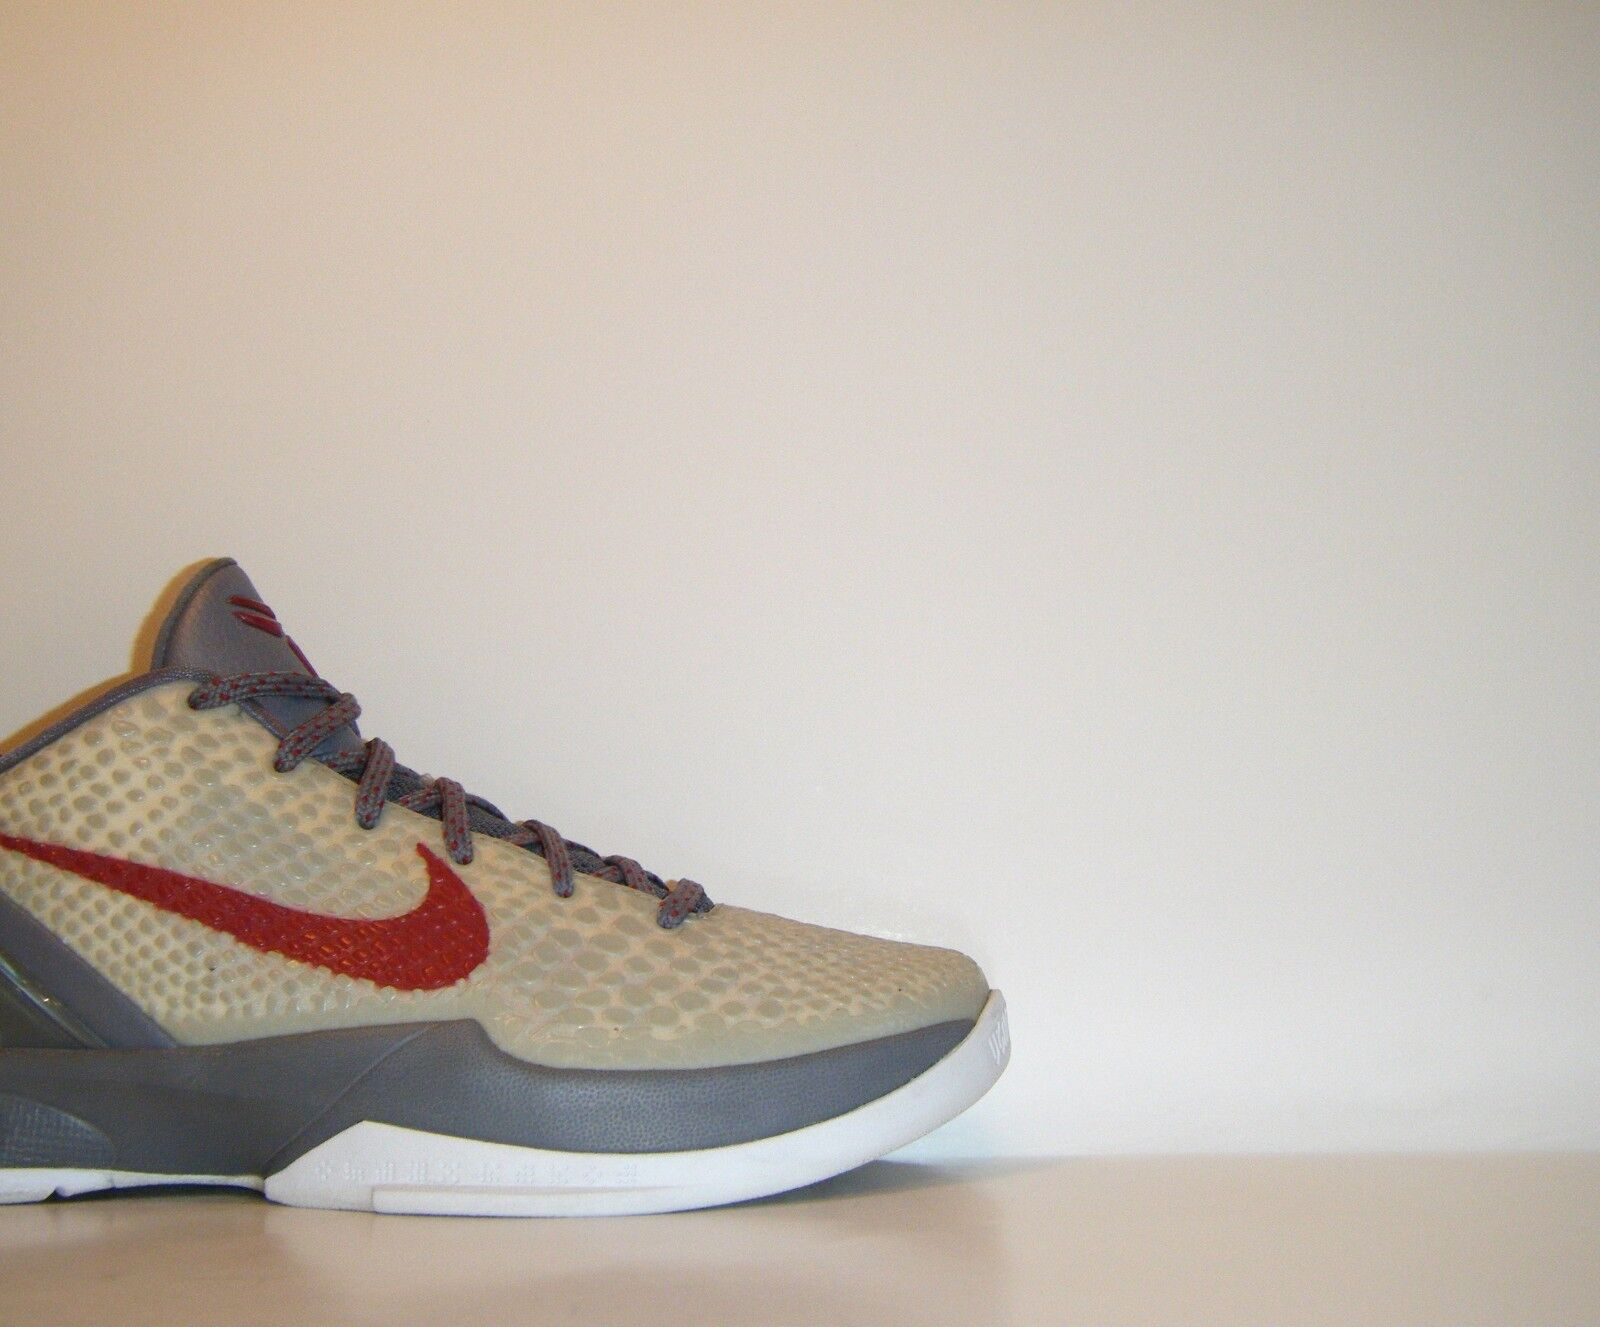 2011 Nike Zoom Kobe VI 6 Lower Merion Aces PE Promo Sample Sz 7.5 Prelude Grinch